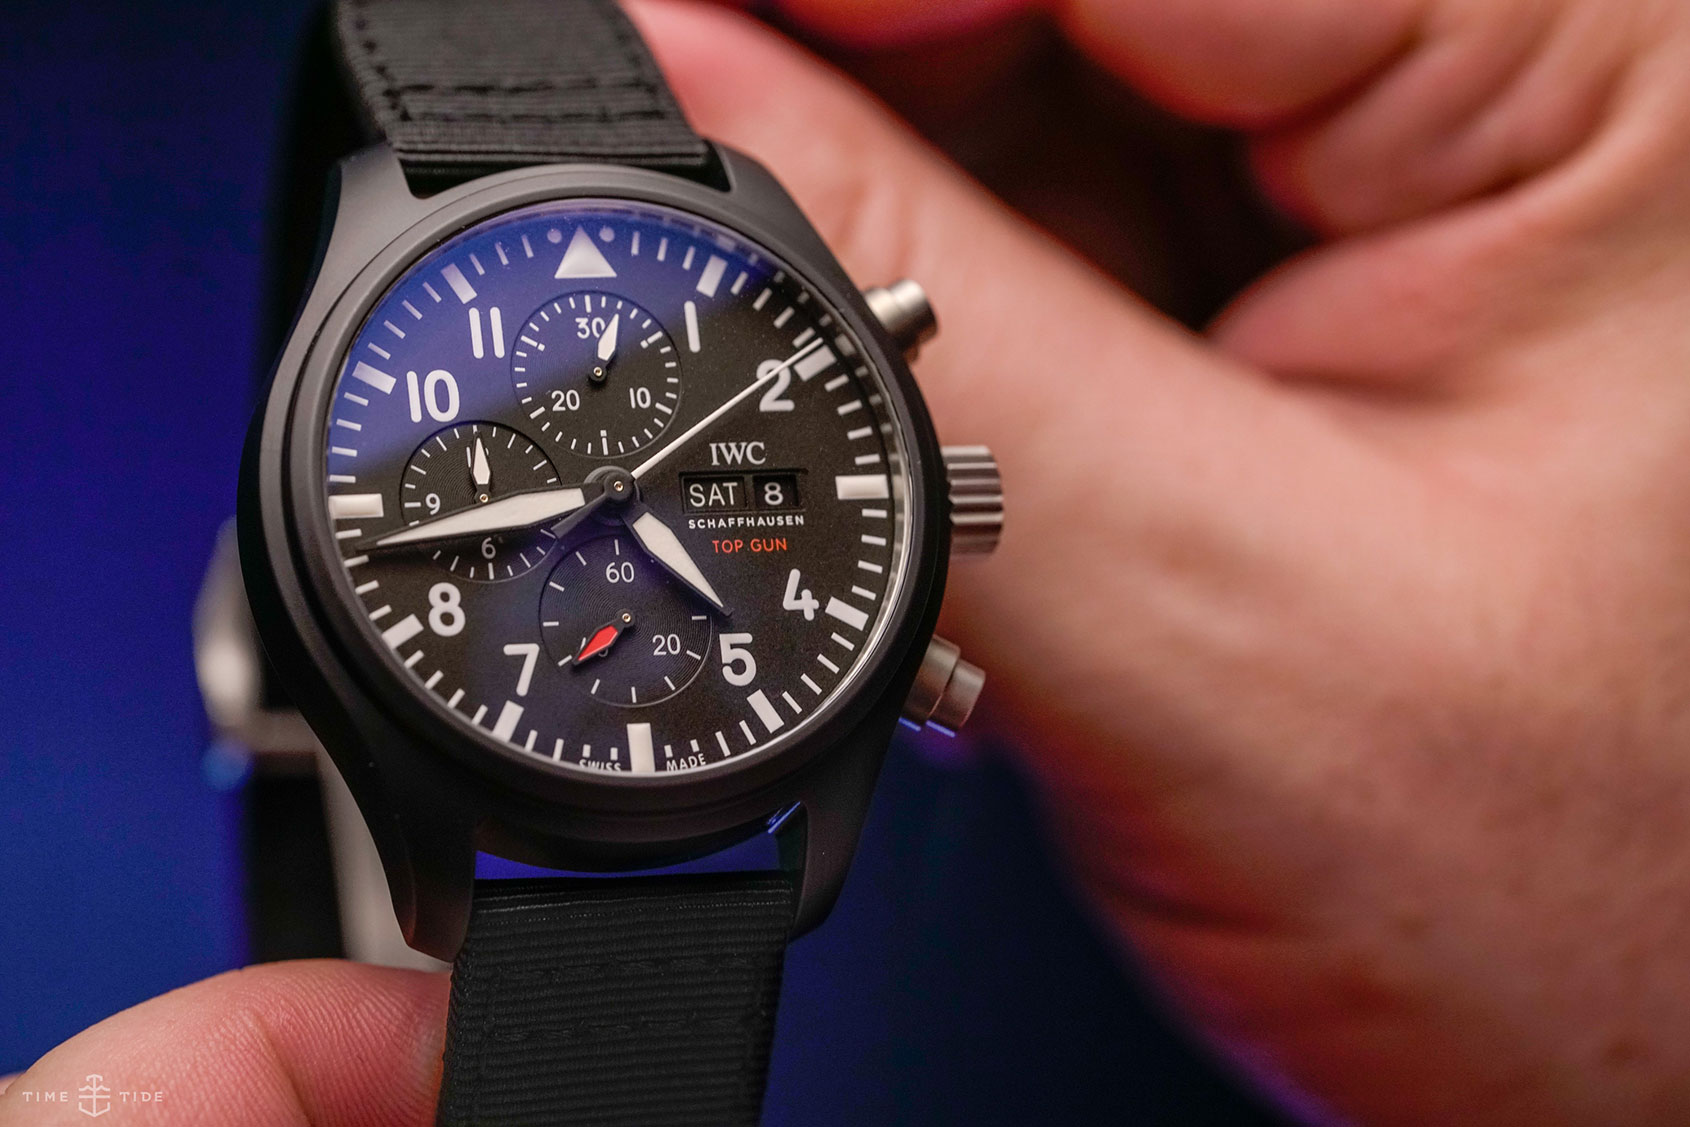 A quick flyover of IWC's Pilot's collection feat. the Classic, Le Petit Prince, Spitfire and Top Gun lines